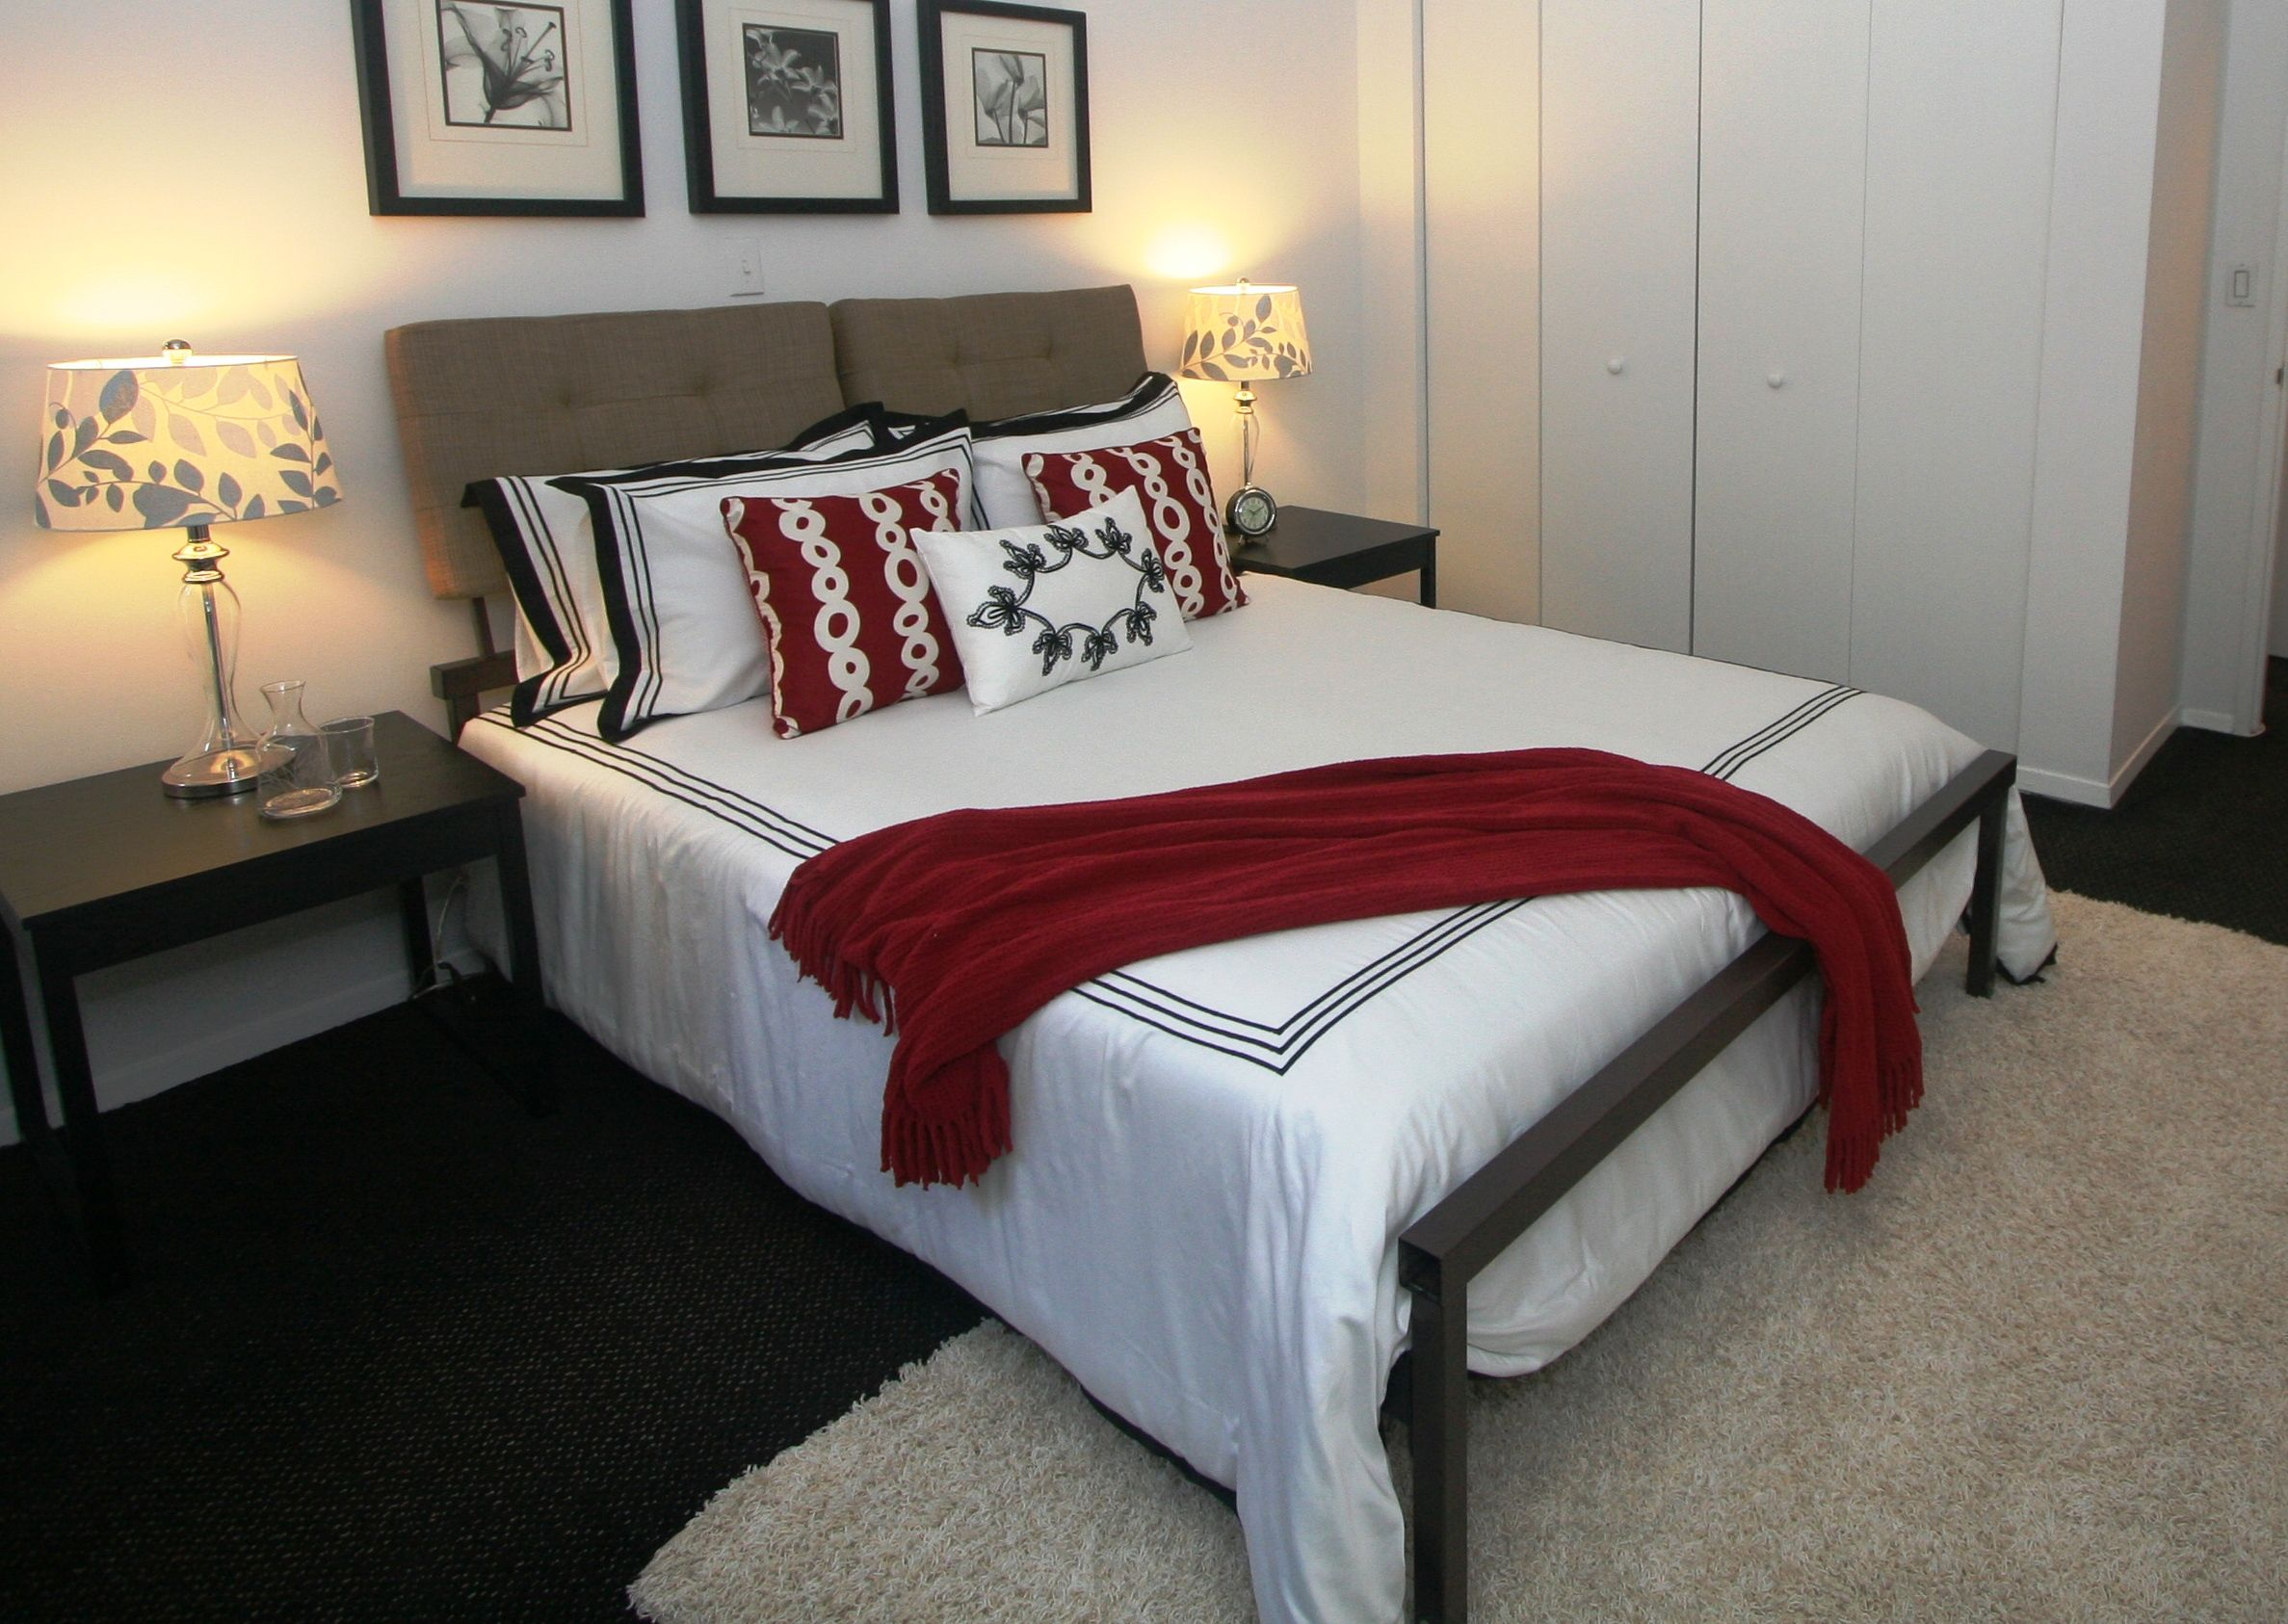 Black and white bedrooms with color accents - Black And White With Red Accents Bedroom Staged To Sell Home Decor